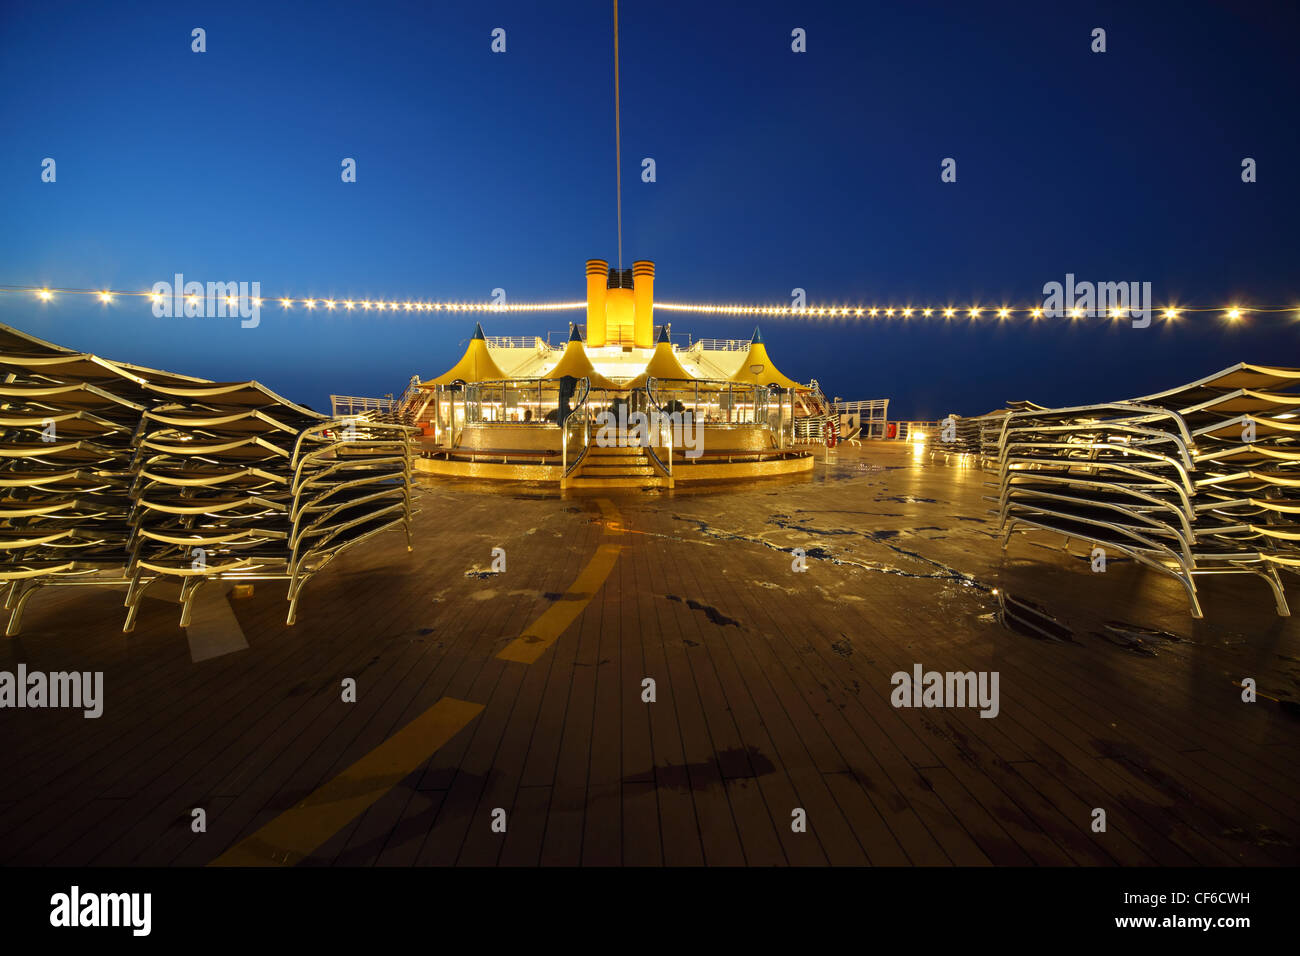 illuminated deck of cruise ship at evening. bar and tables in center of image. - Stock Image